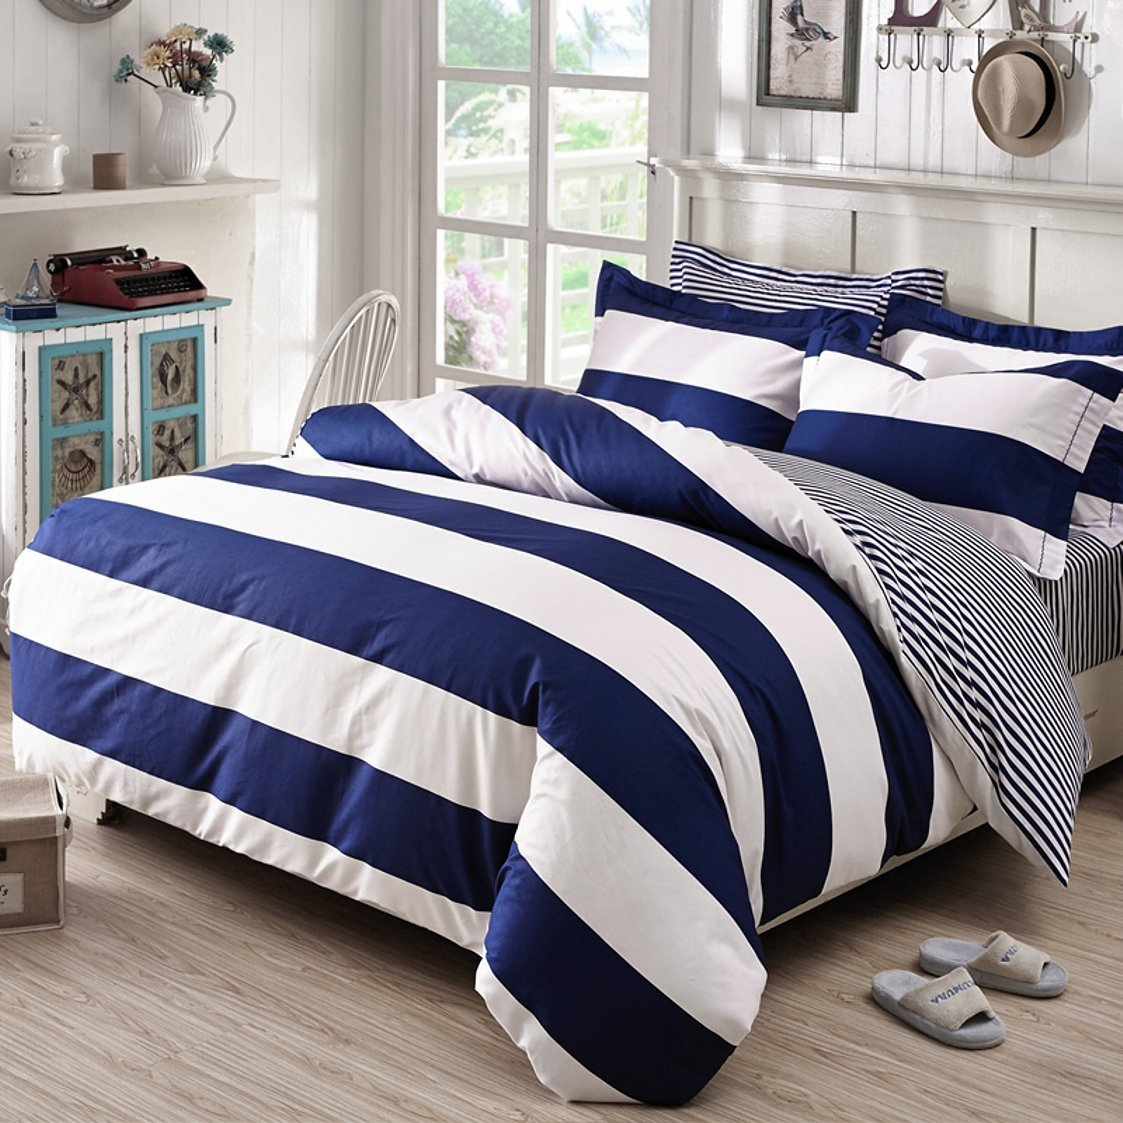 Buy Classic Cabana Rugby Stripe Print Duvet Cover 100 Cotton Bedding Set Modern Geometric Crisp White And Navy Blue Stripes Reversible Pattern Queen Navy Blue In Cheap Price On Alibaba Com